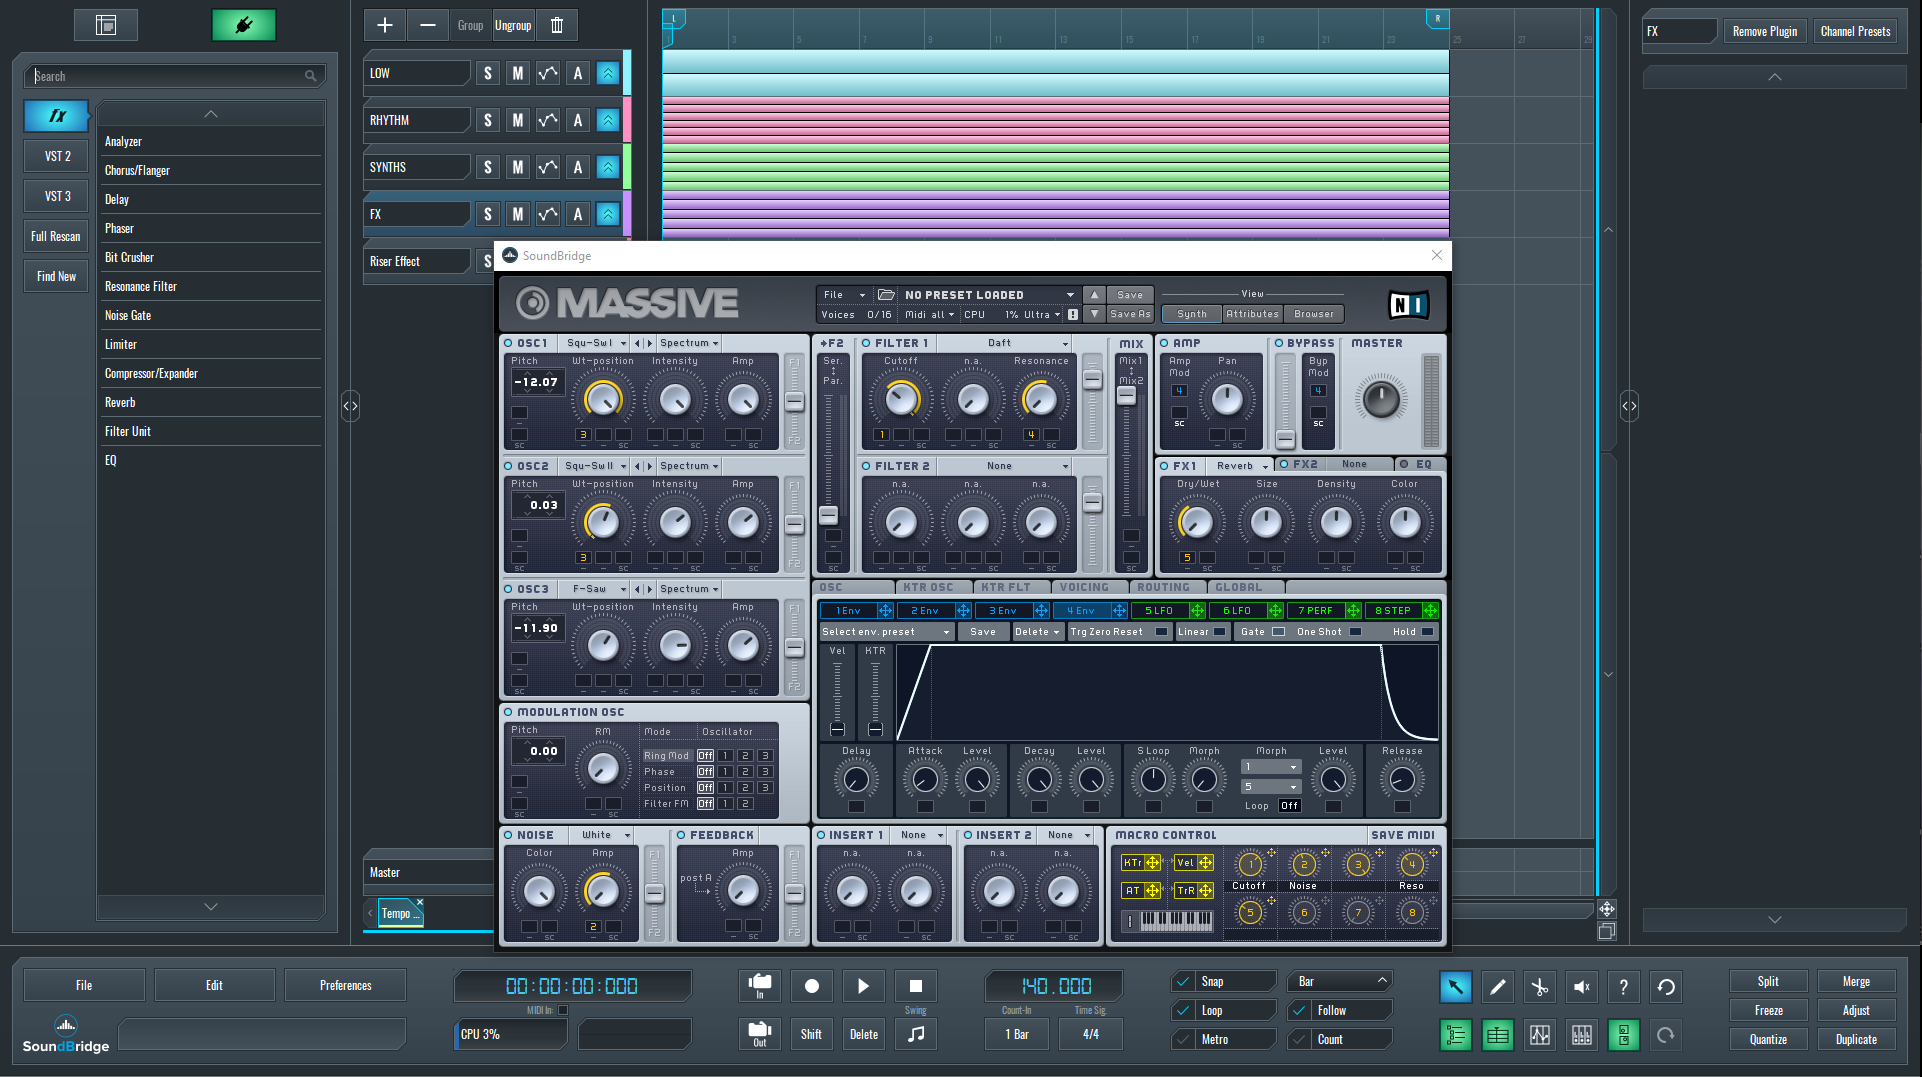 Initial Massive synth parameters for riser effect